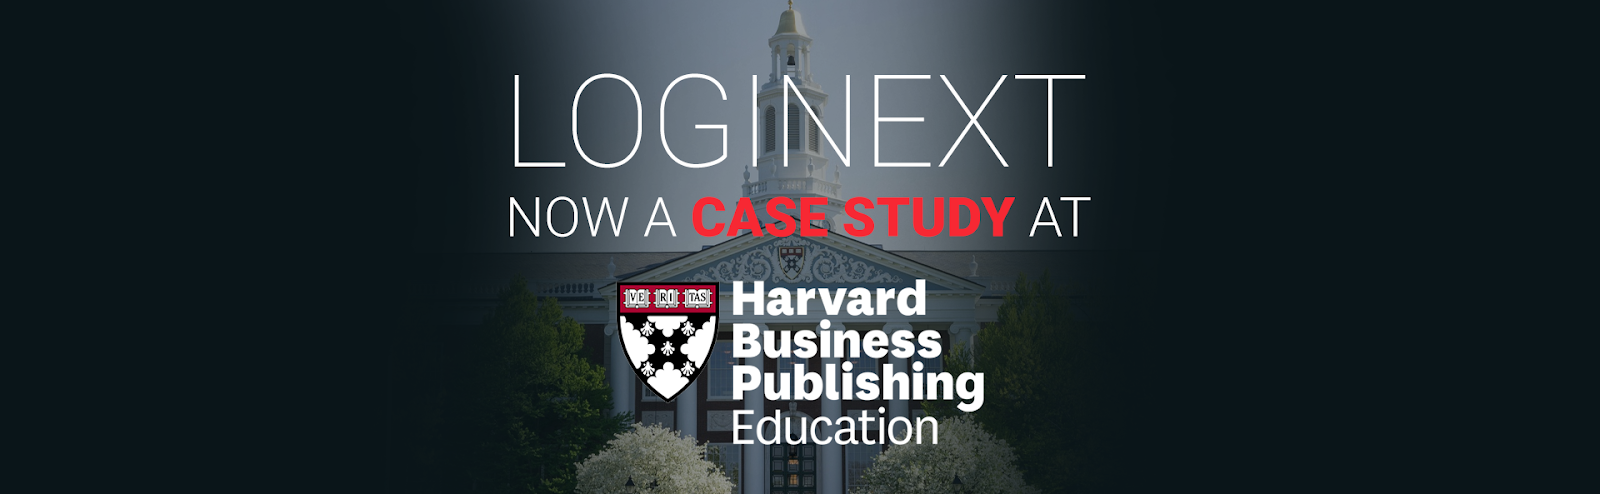 Harvard Business Review now has LogiNext as a case study